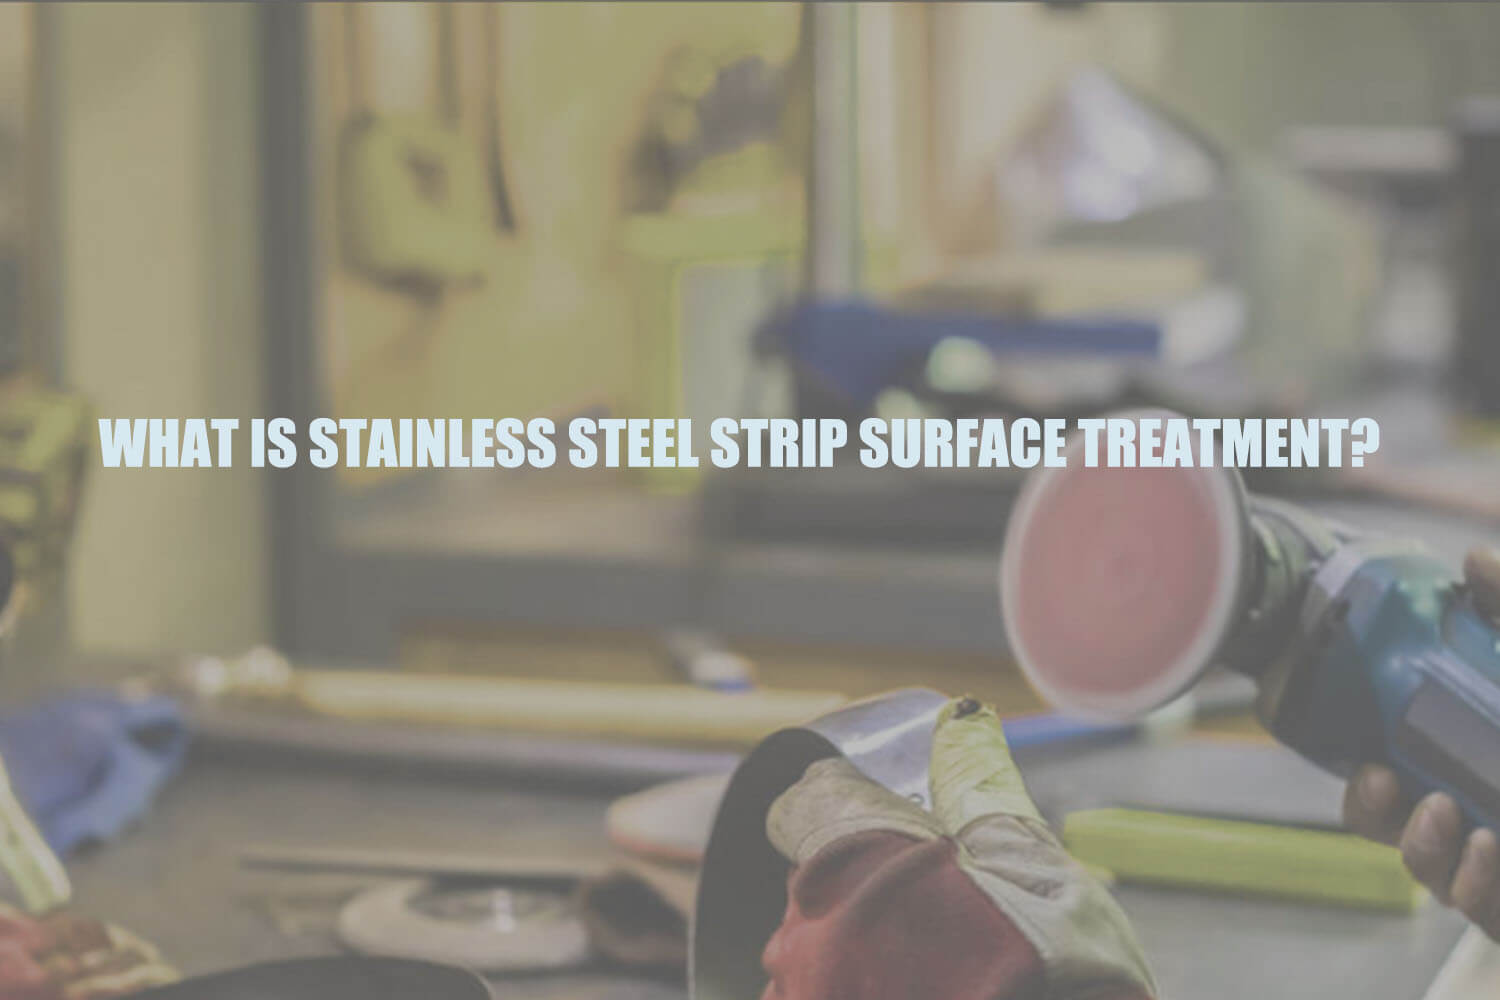 stainless-steel-strip-surface-treatment